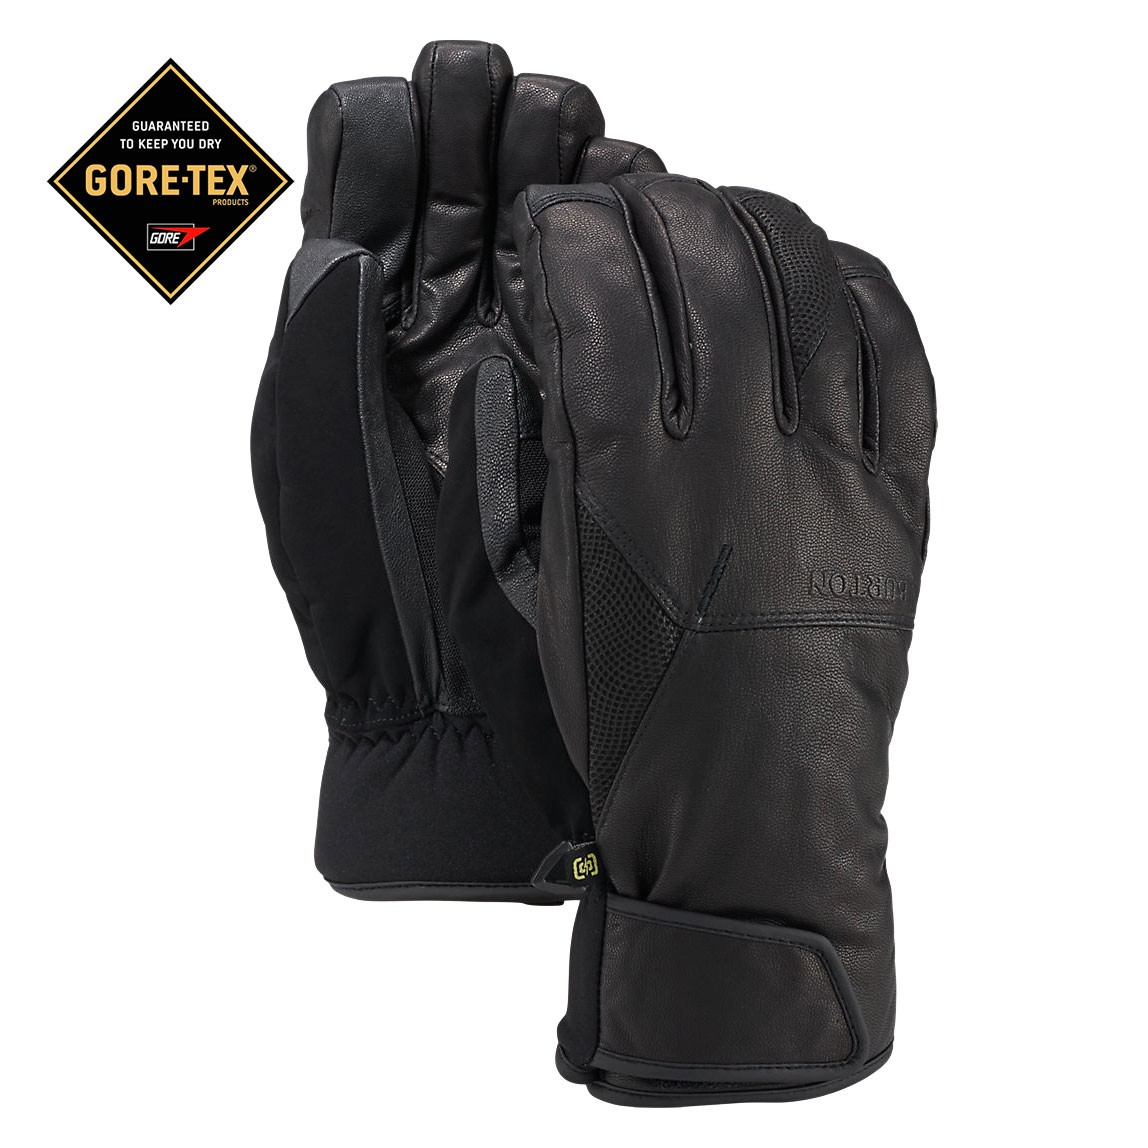 Rukavice Burton Gondy Gore Leather Mitt true black vel.M 16/17 + doručení do 24 hodin